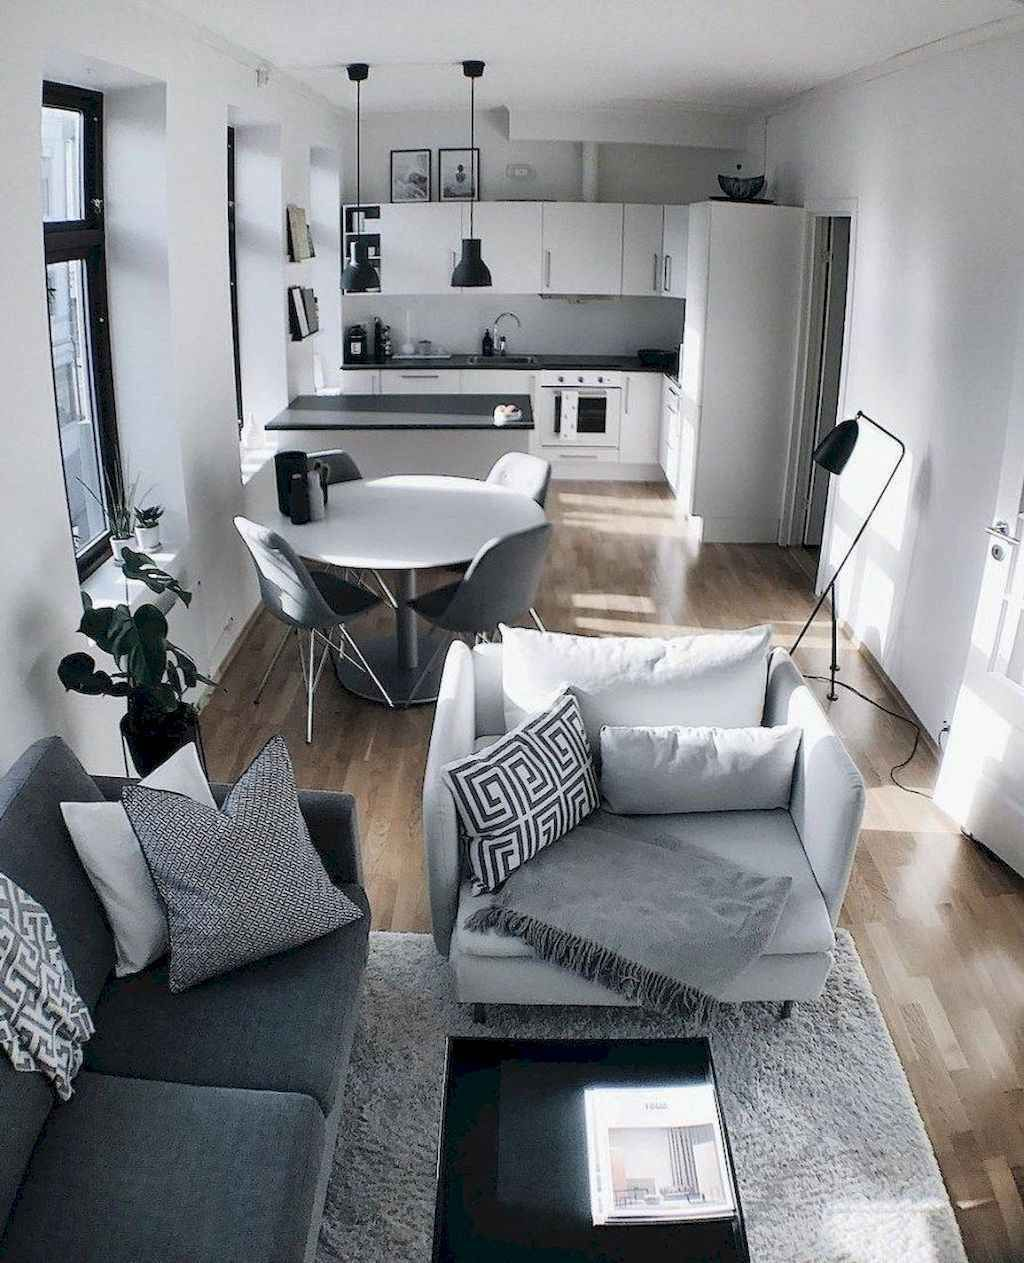 09 Beautiful Apartment Decorating Ideas On A Budget Augustexture Com Small Apartment Living Room Apartment Decor Inspiration Apartment Living Room #small #apartments #living #room #designs